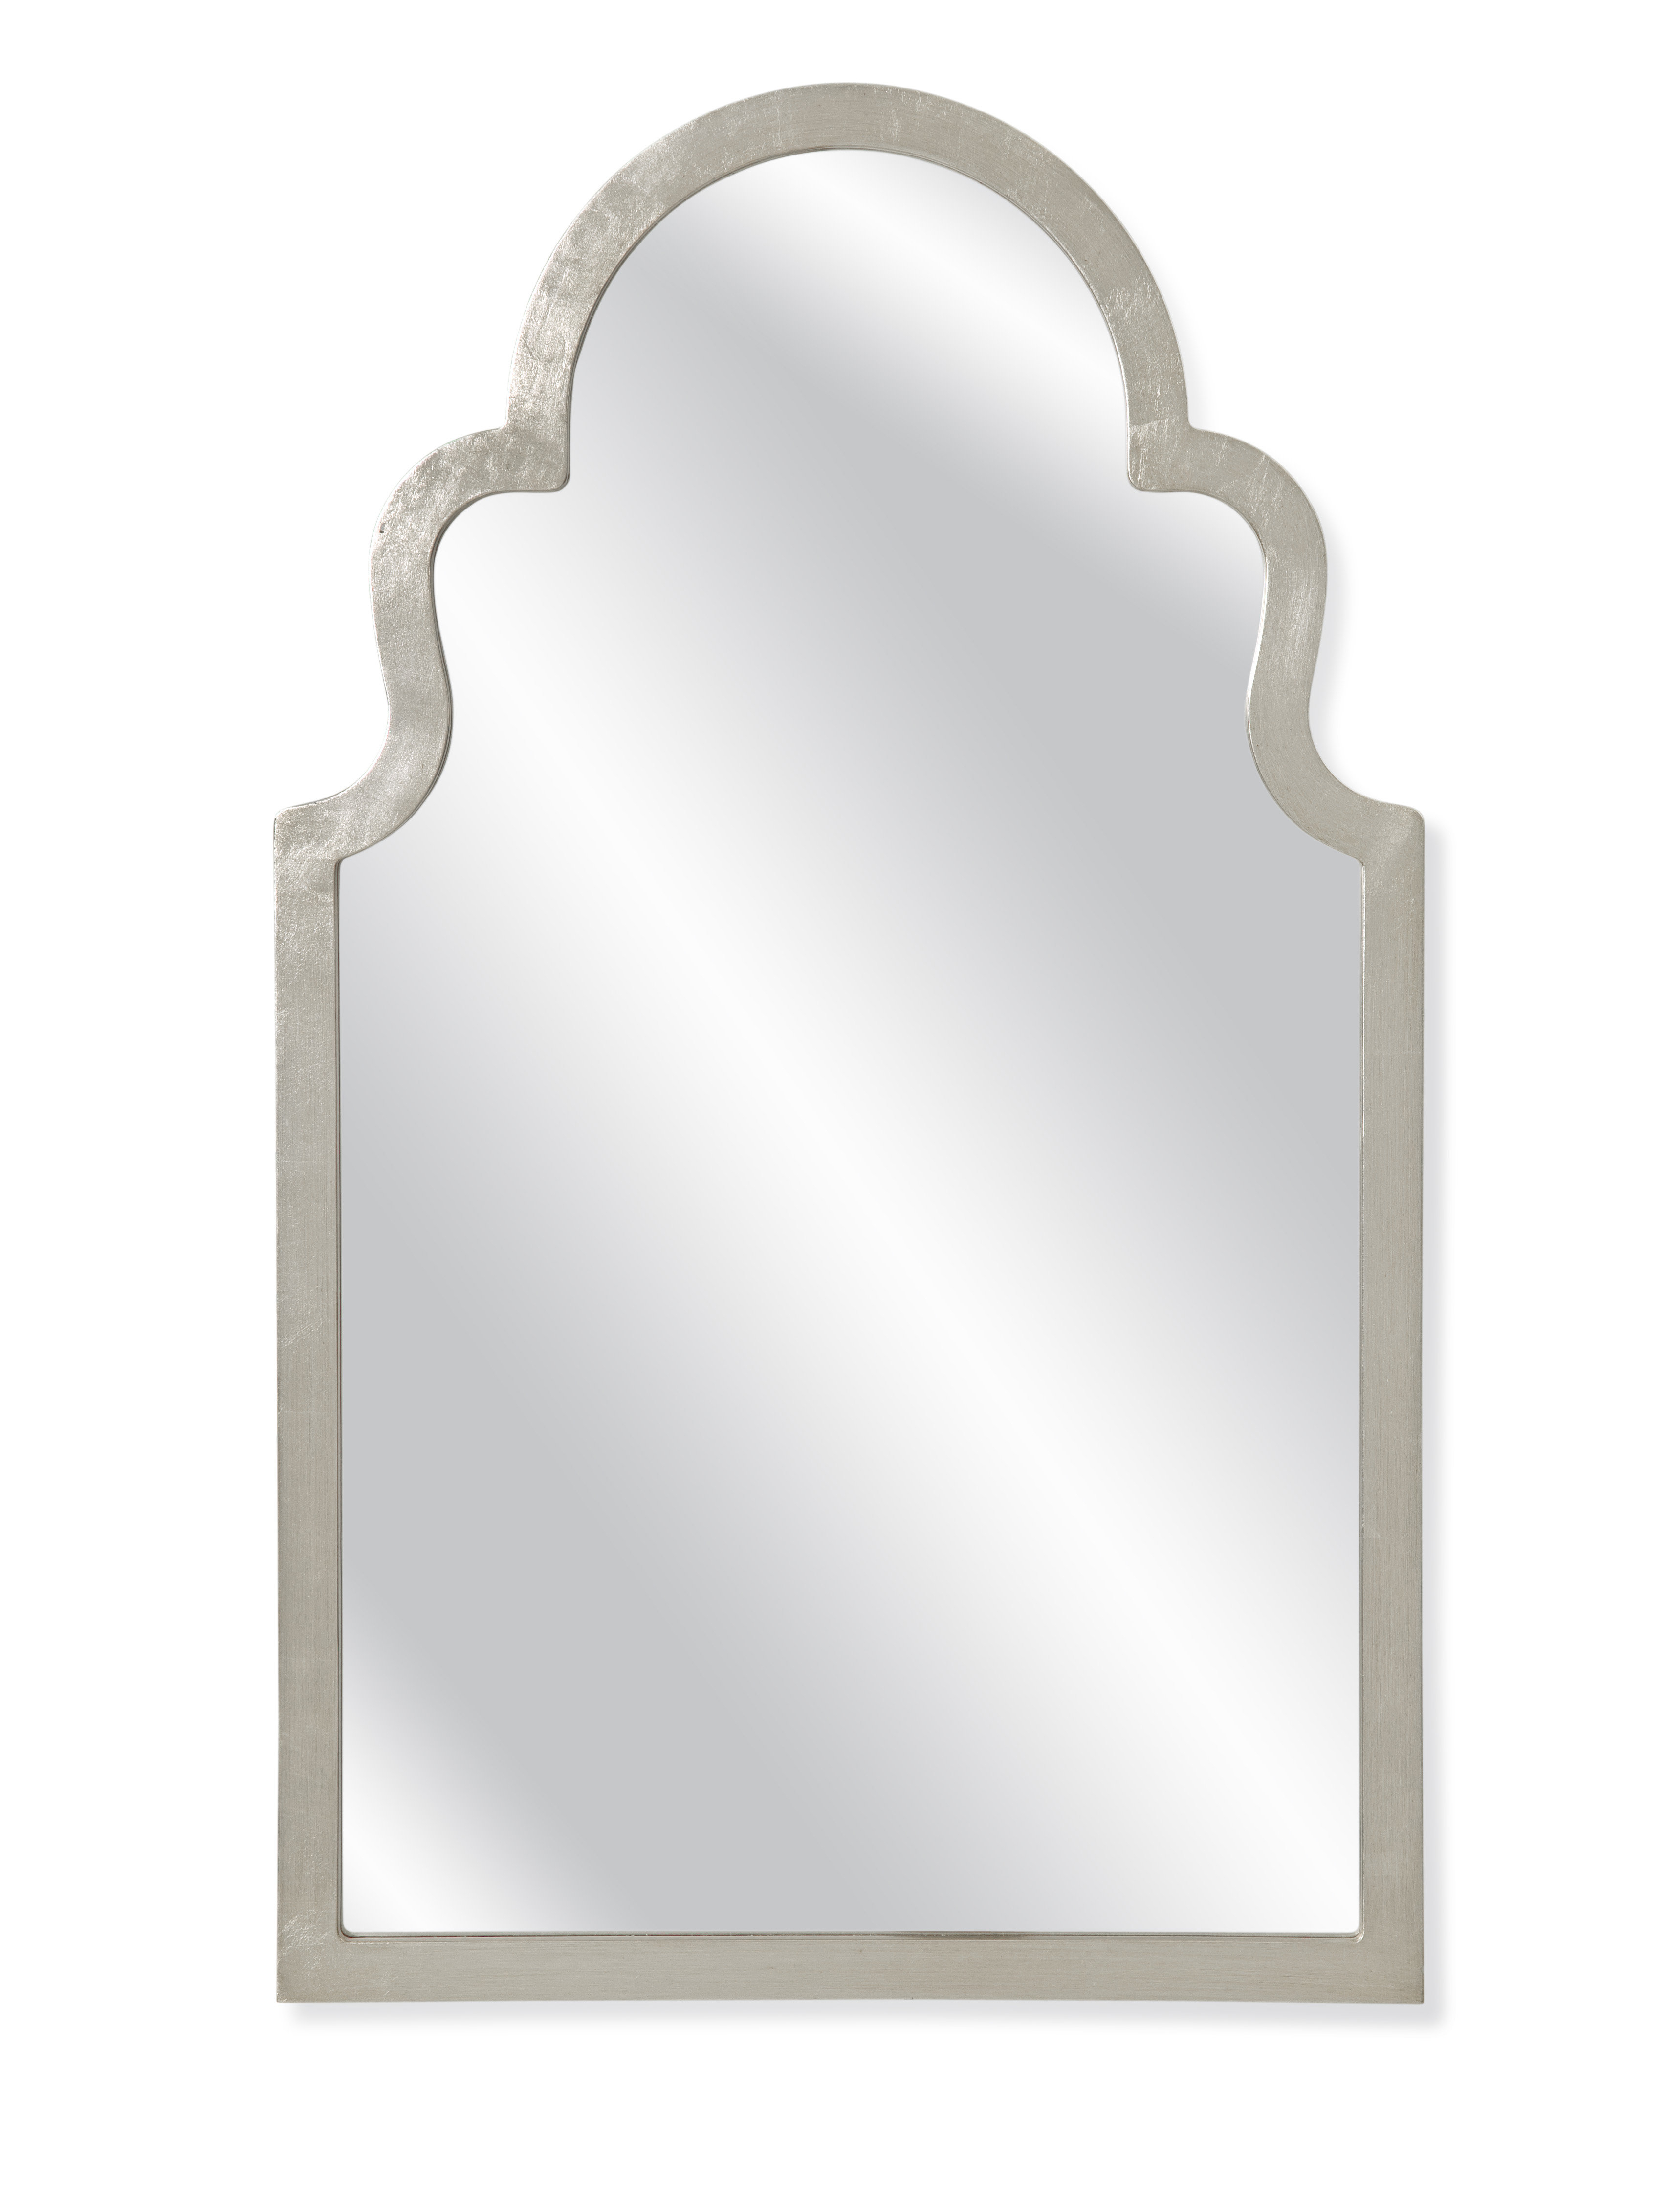 Well Liked Arch Vertical Wall Mirrors Intended For Arch Top Vertical Wall Mirror (Gallery 4 of 20)